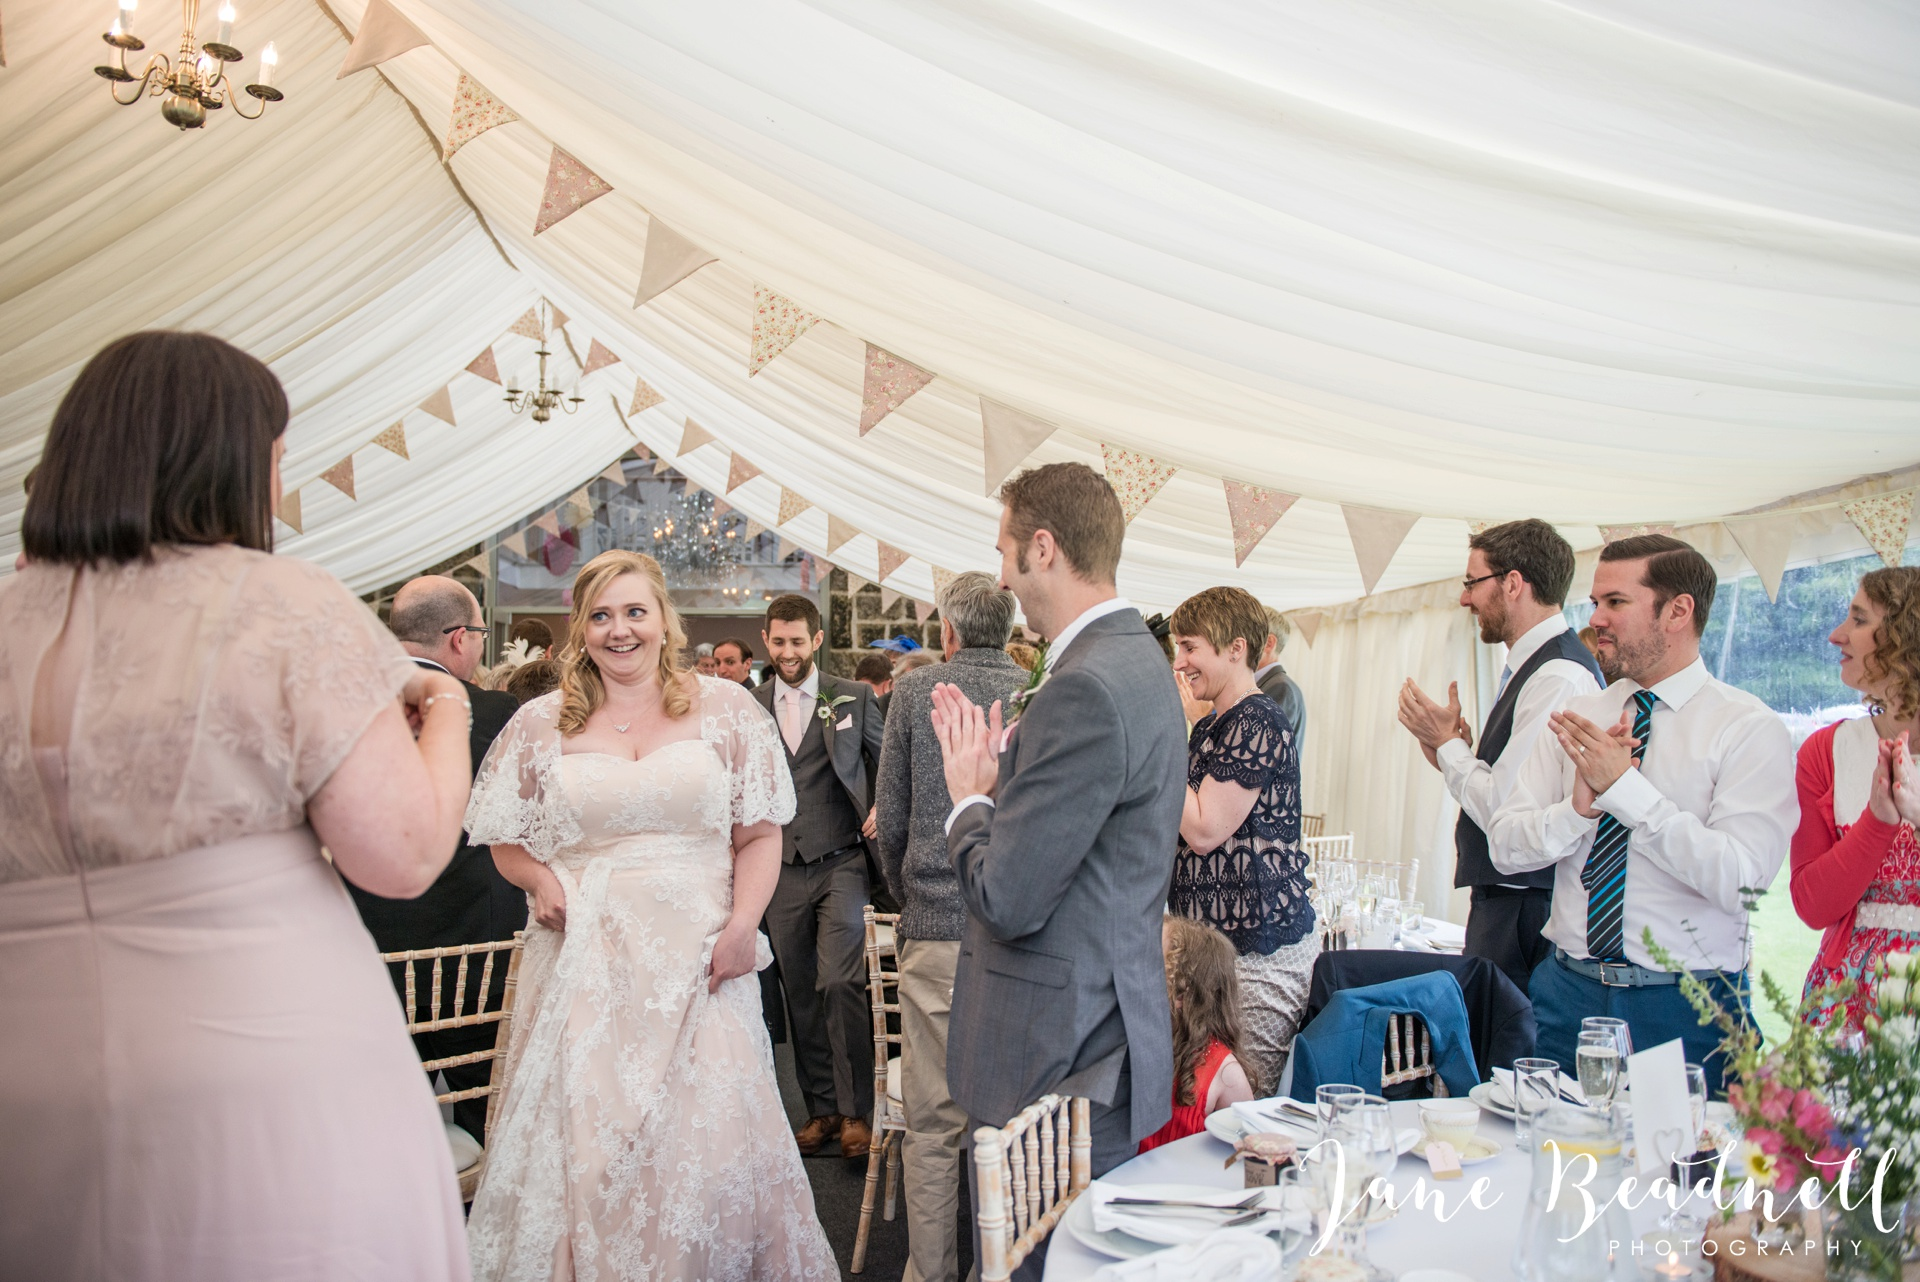 Yorkshire Wedding Photography the cheerful Chilli Barn Wedding by Jane Beadnell Photography_0161